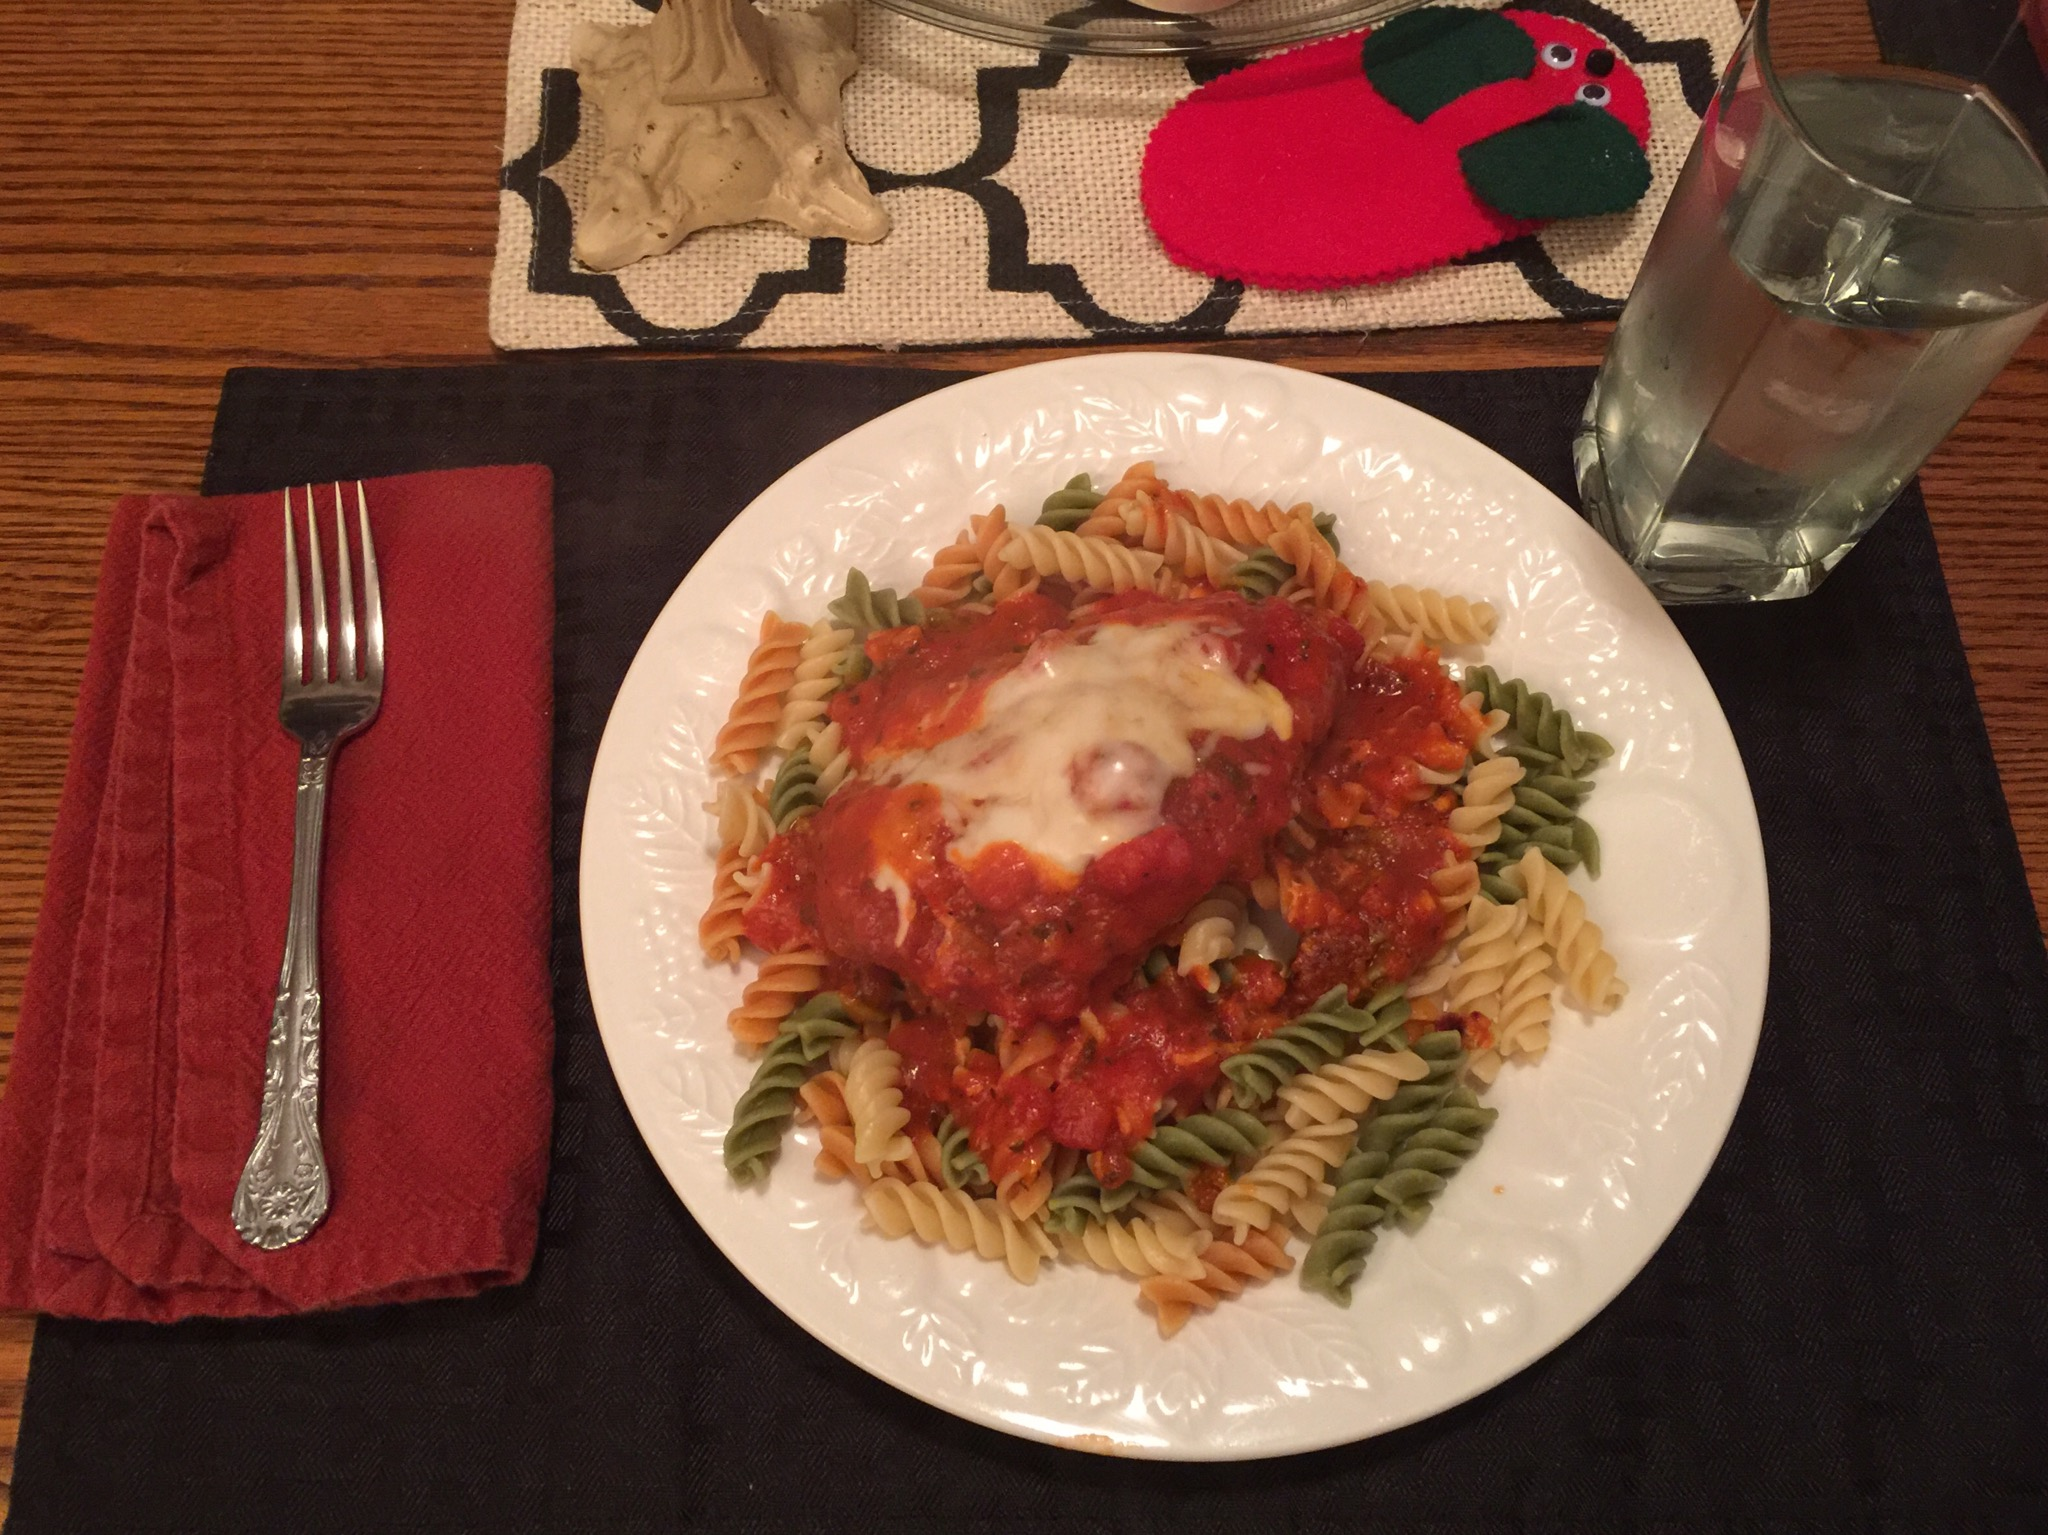 A 20-Minute Chicken Parmesan mywoodworld